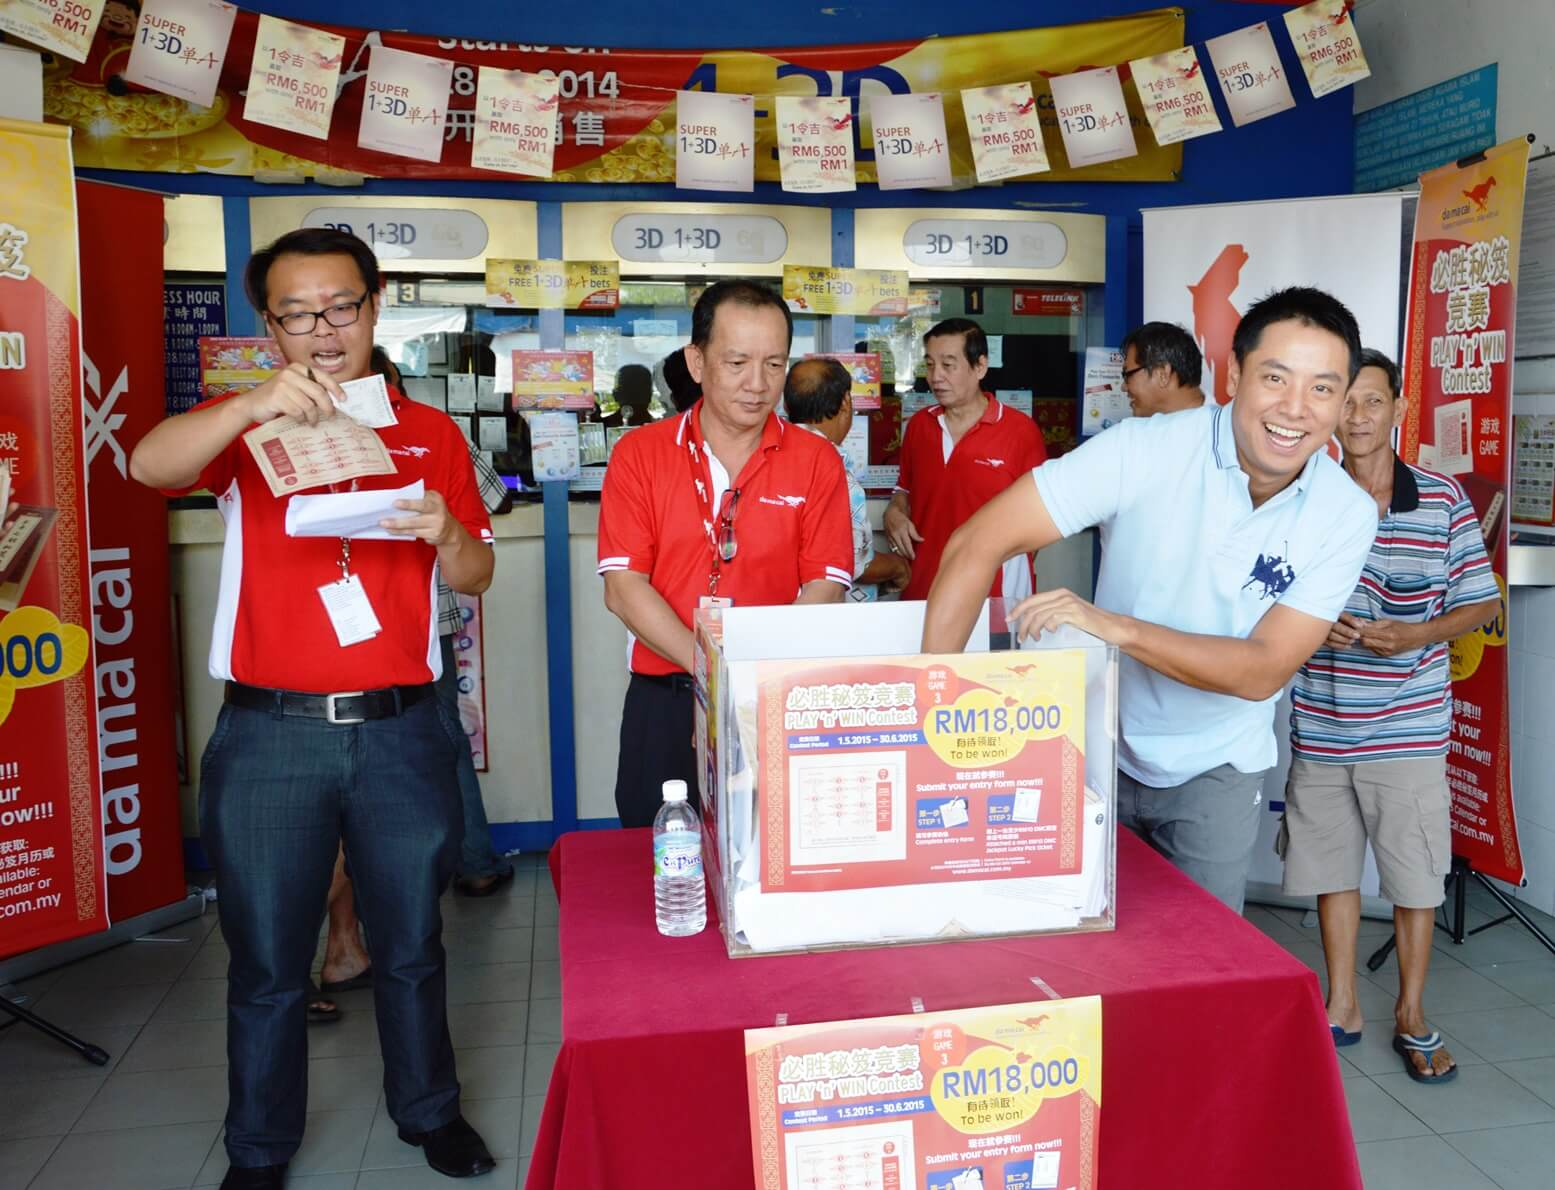 66-Lucky-Customers-4dresult-Won-RM18000